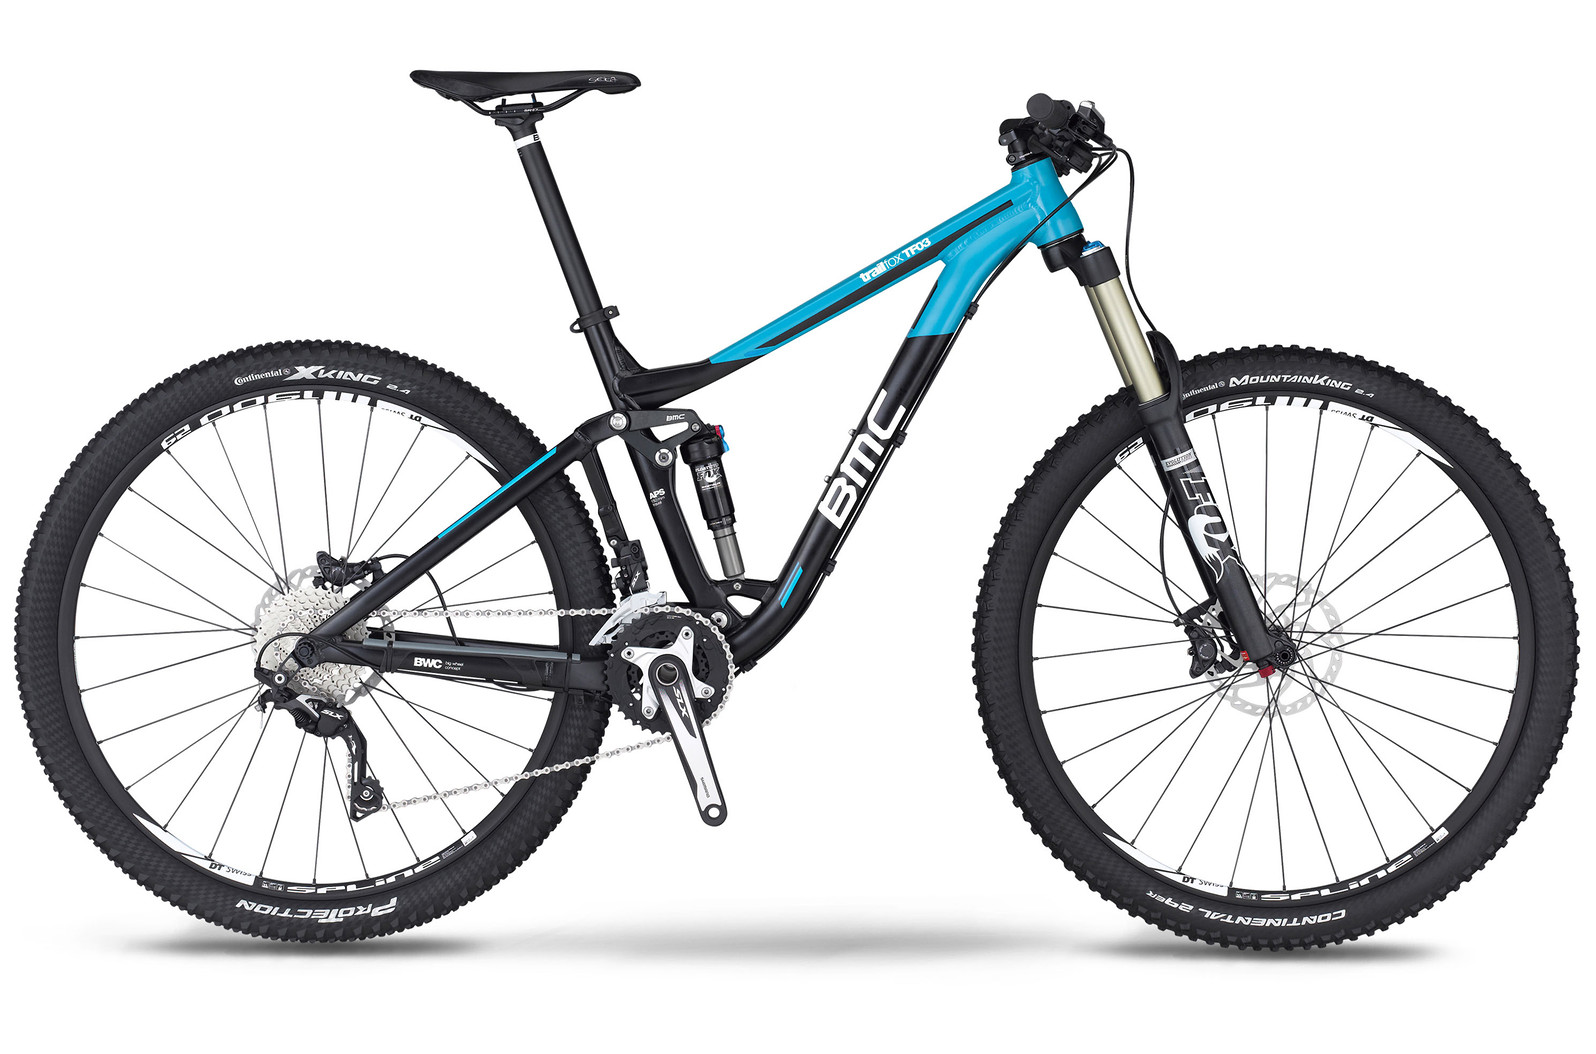 bike - 2014 BMC Trailfox TF03 with SLX